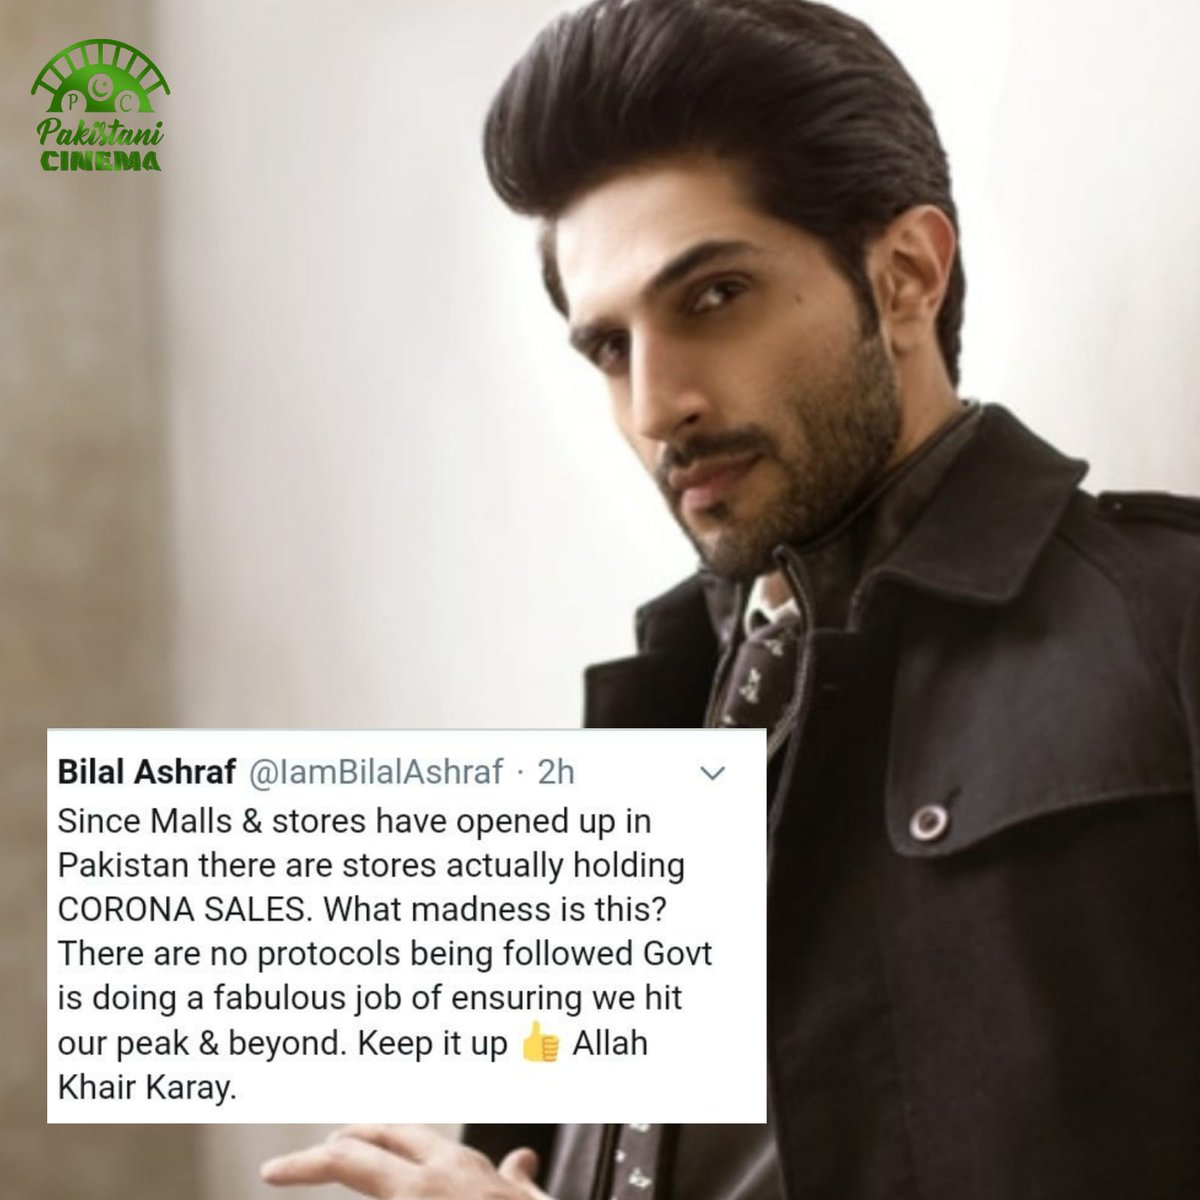 Bilal Ashraf calls out stores holding #CoronaSales and Govt which in his view is leaving no stone unturned to ensure Corona hits its peak!! @IamBilalAshrafpic.twitter.com/y85ItVMgXR